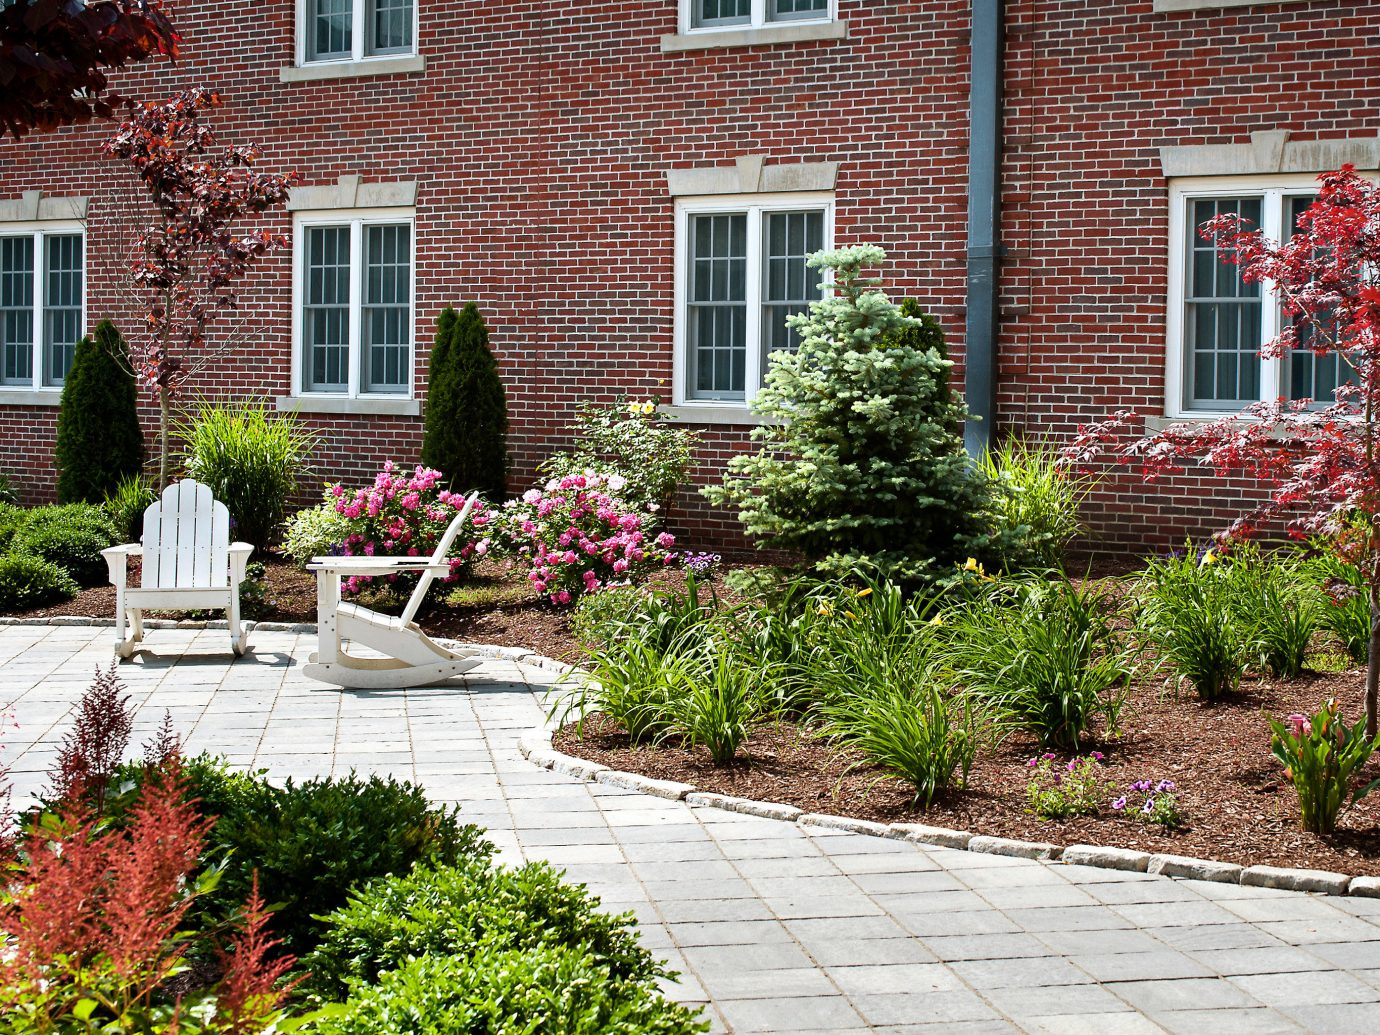 Classic Cultural Garden Grounds Hotels Outdoors Patio building outdoor house brick walkway property yard wall backyard flower Courtyard lawn home residential area landscape estate landscape architect real estate landscaping shrub stone